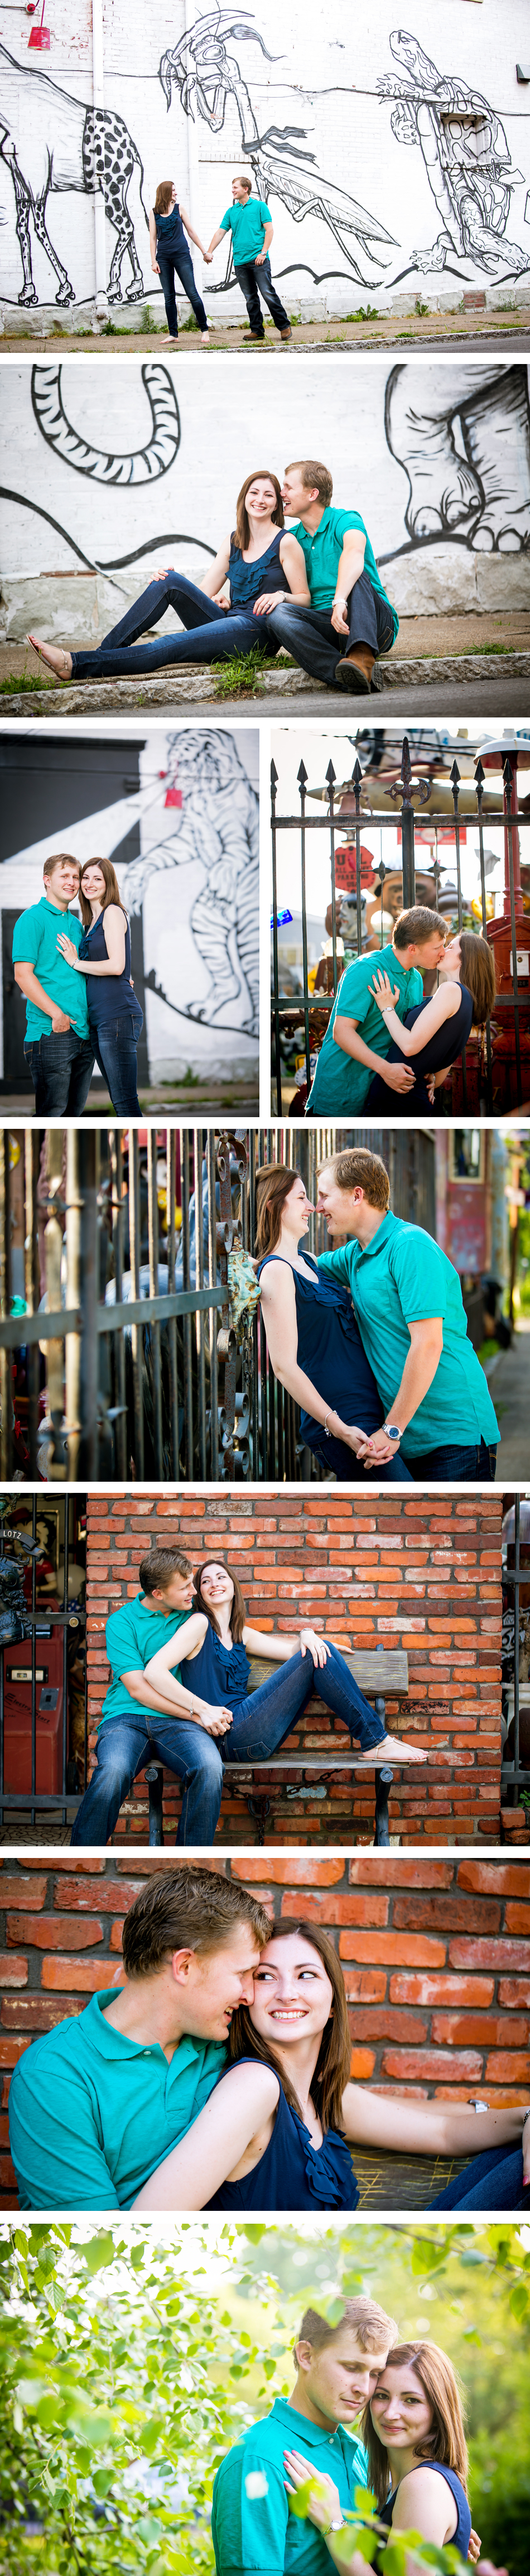 Louisville Engagement Photos eMotion image